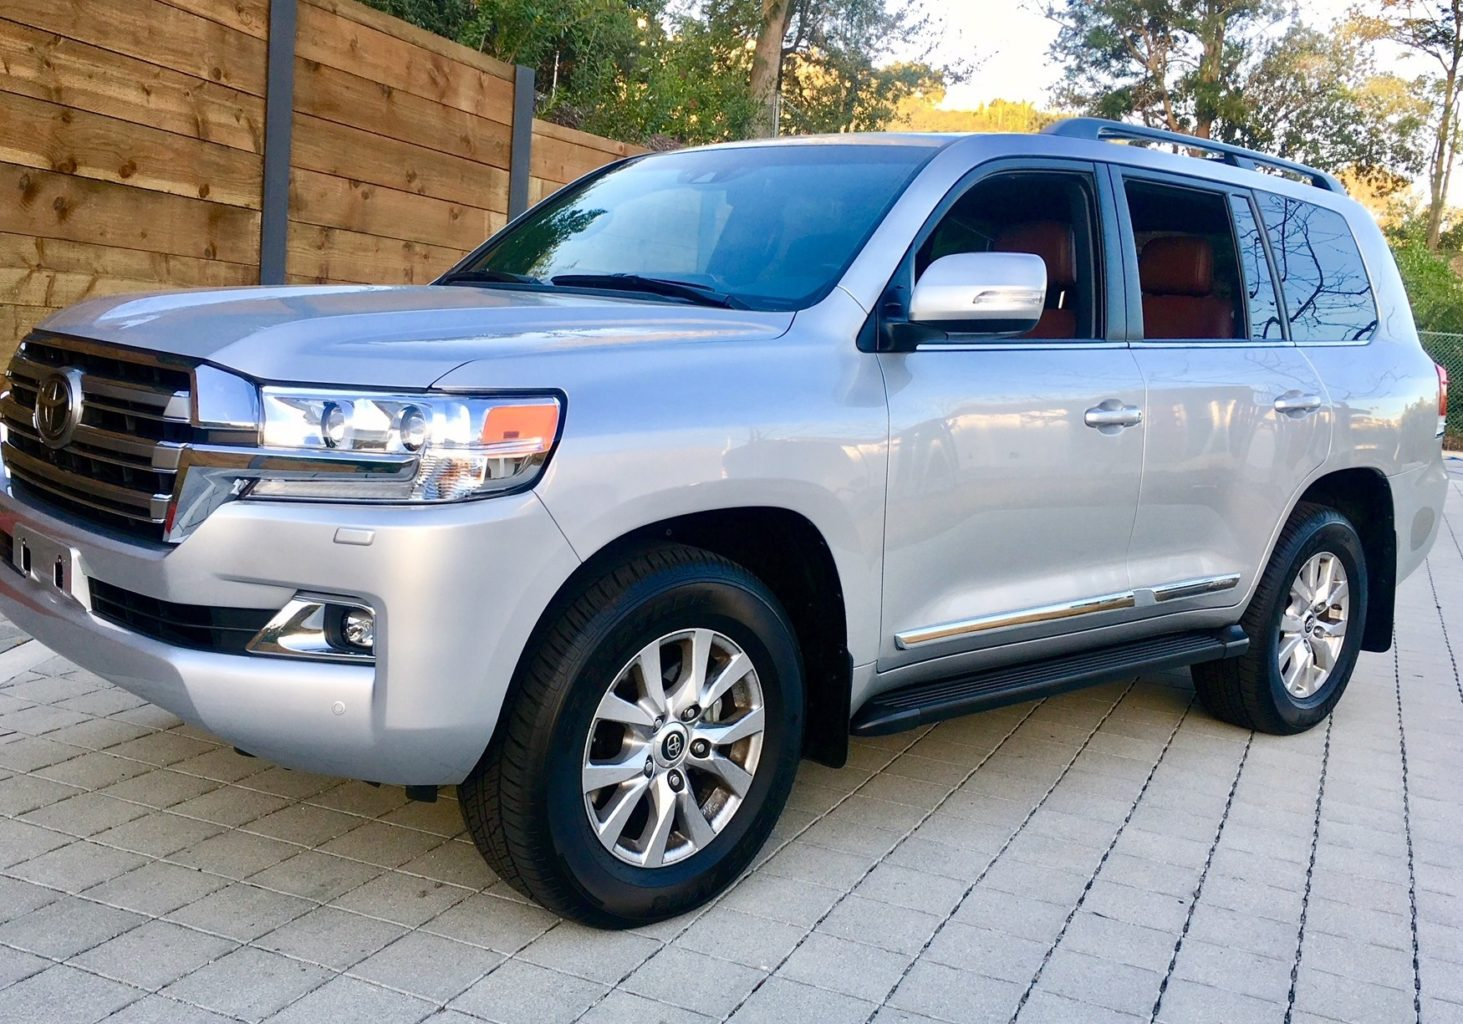 Chevy Awd Cars >> Road Test: 2019 Toyota Land Cruiser | Clean Fleet Report